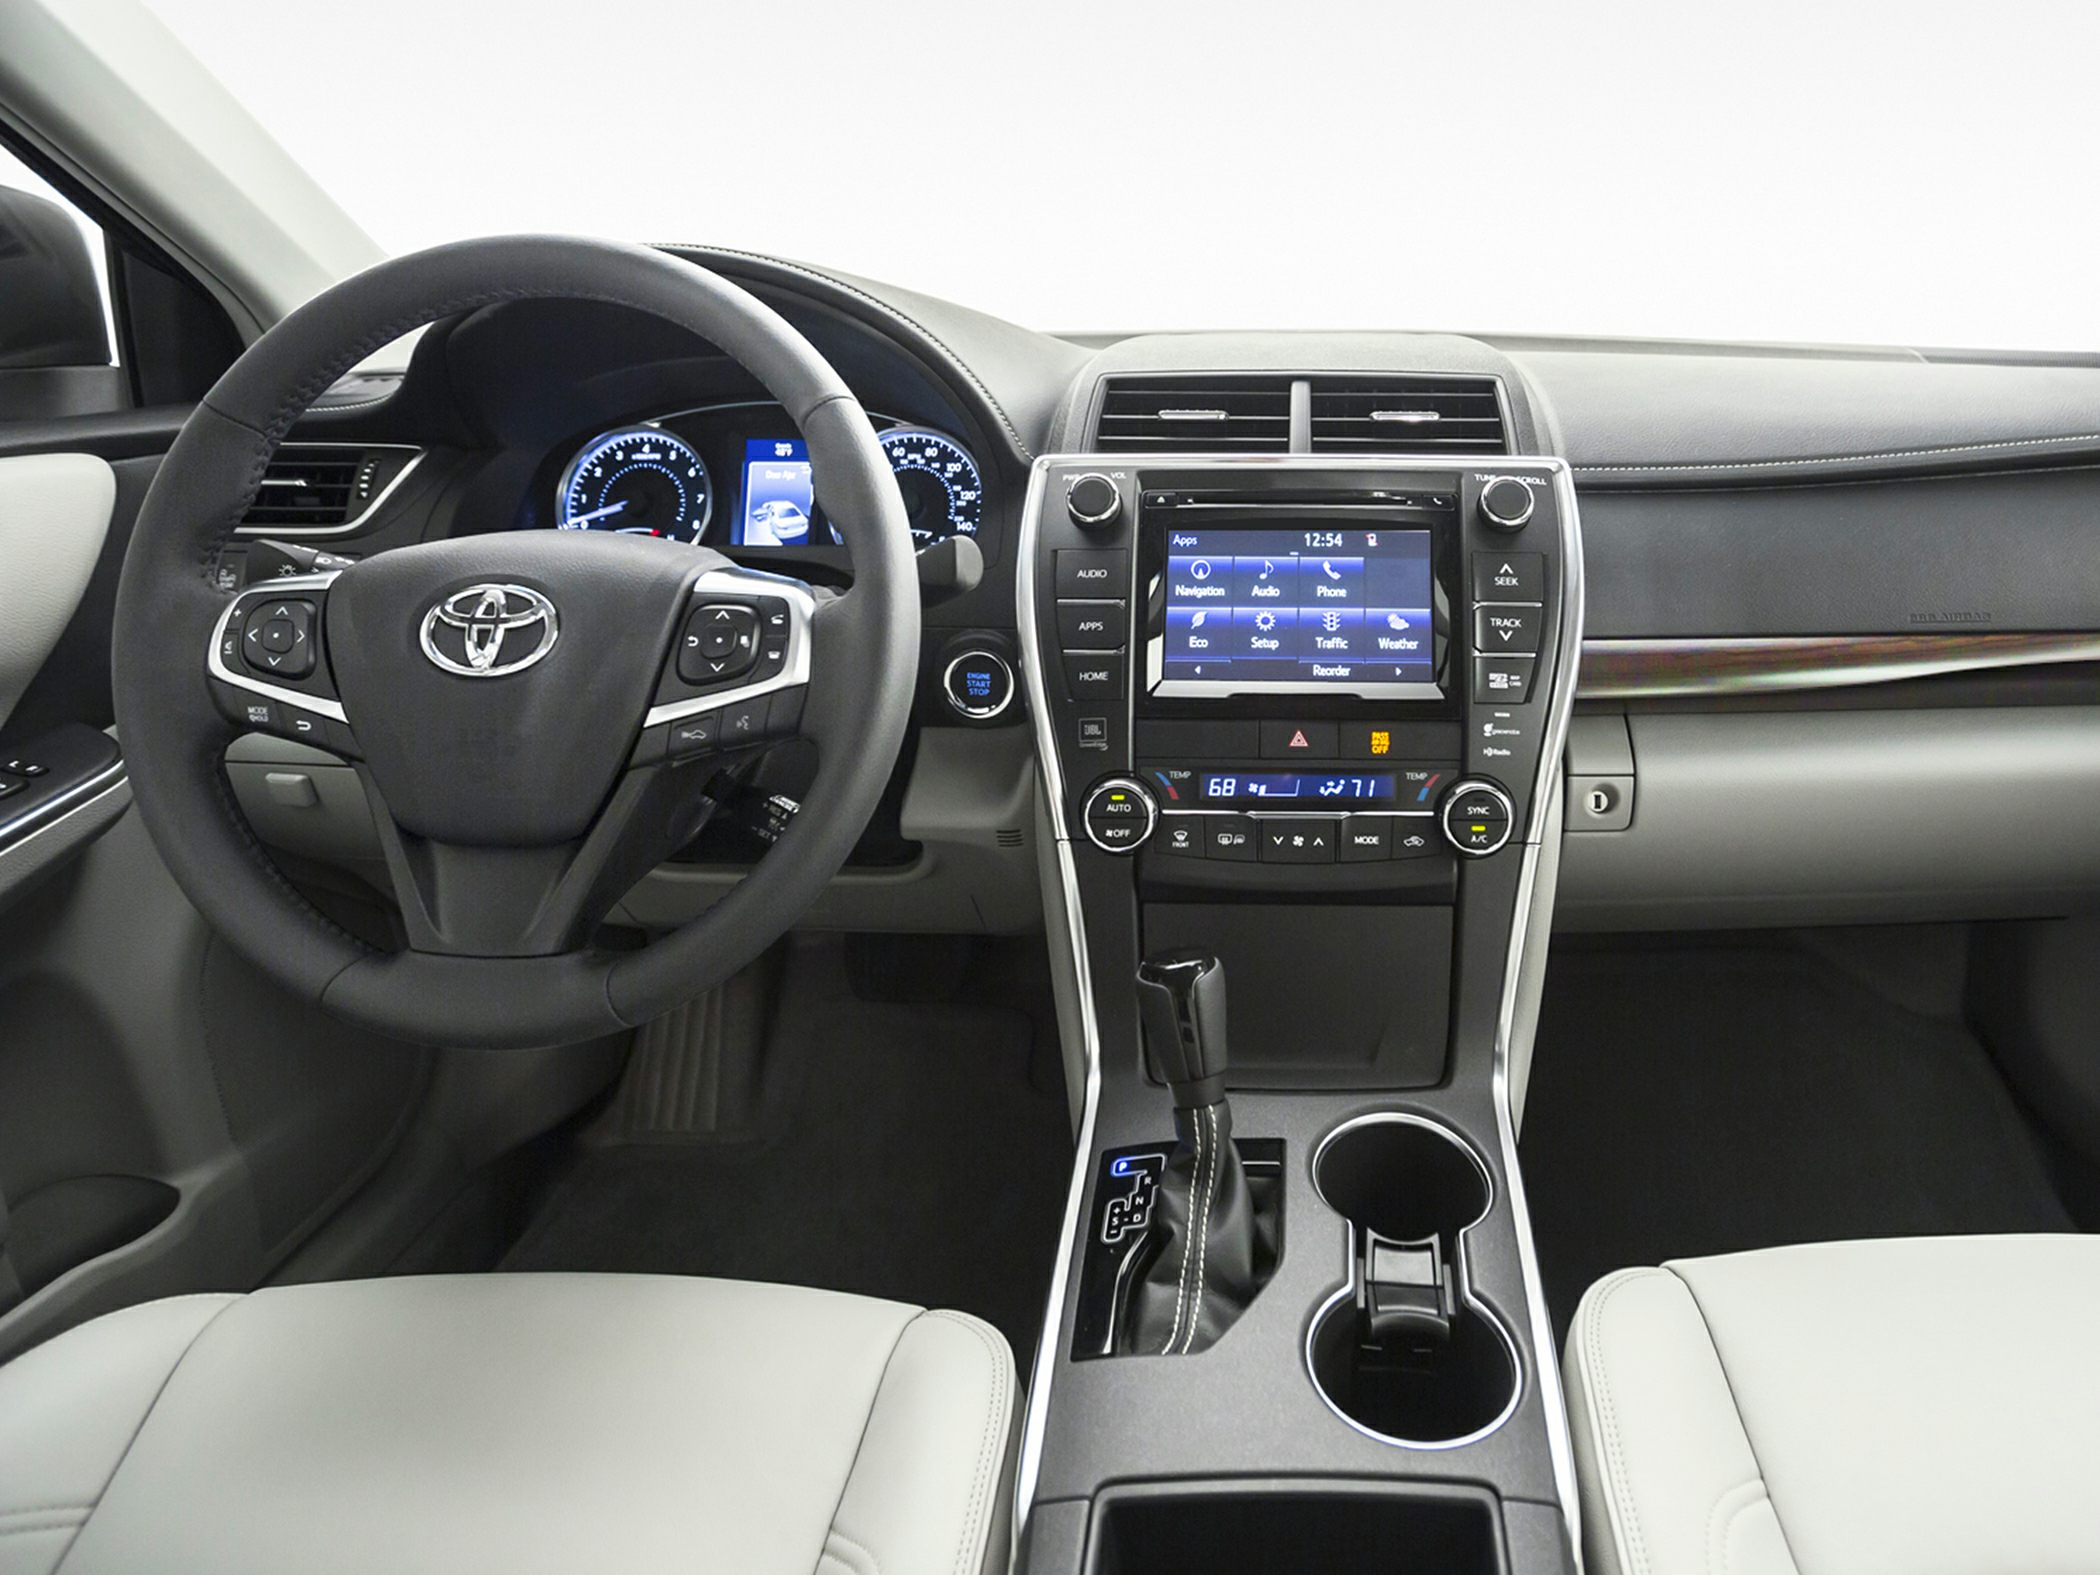 sedan image press and price carsguide confirmed pricing toyota reviews silver spec camry commemorative edition